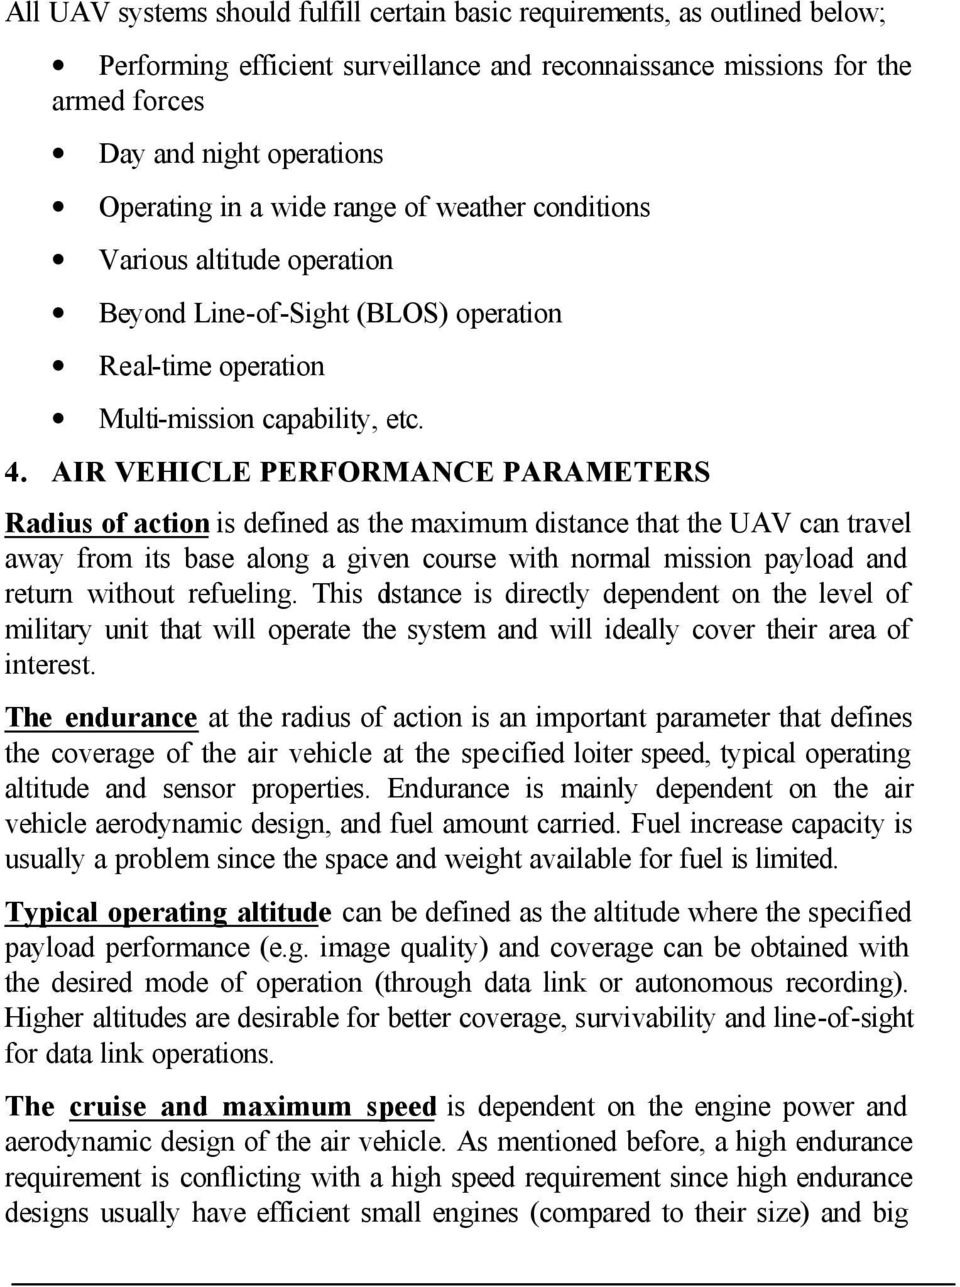 AIR VEHICLE PERFORMANCE PARAMETERS Radius of action is defined as the maximum distance that the UAV can travel away from its base along a given course with normal mission payload and return without